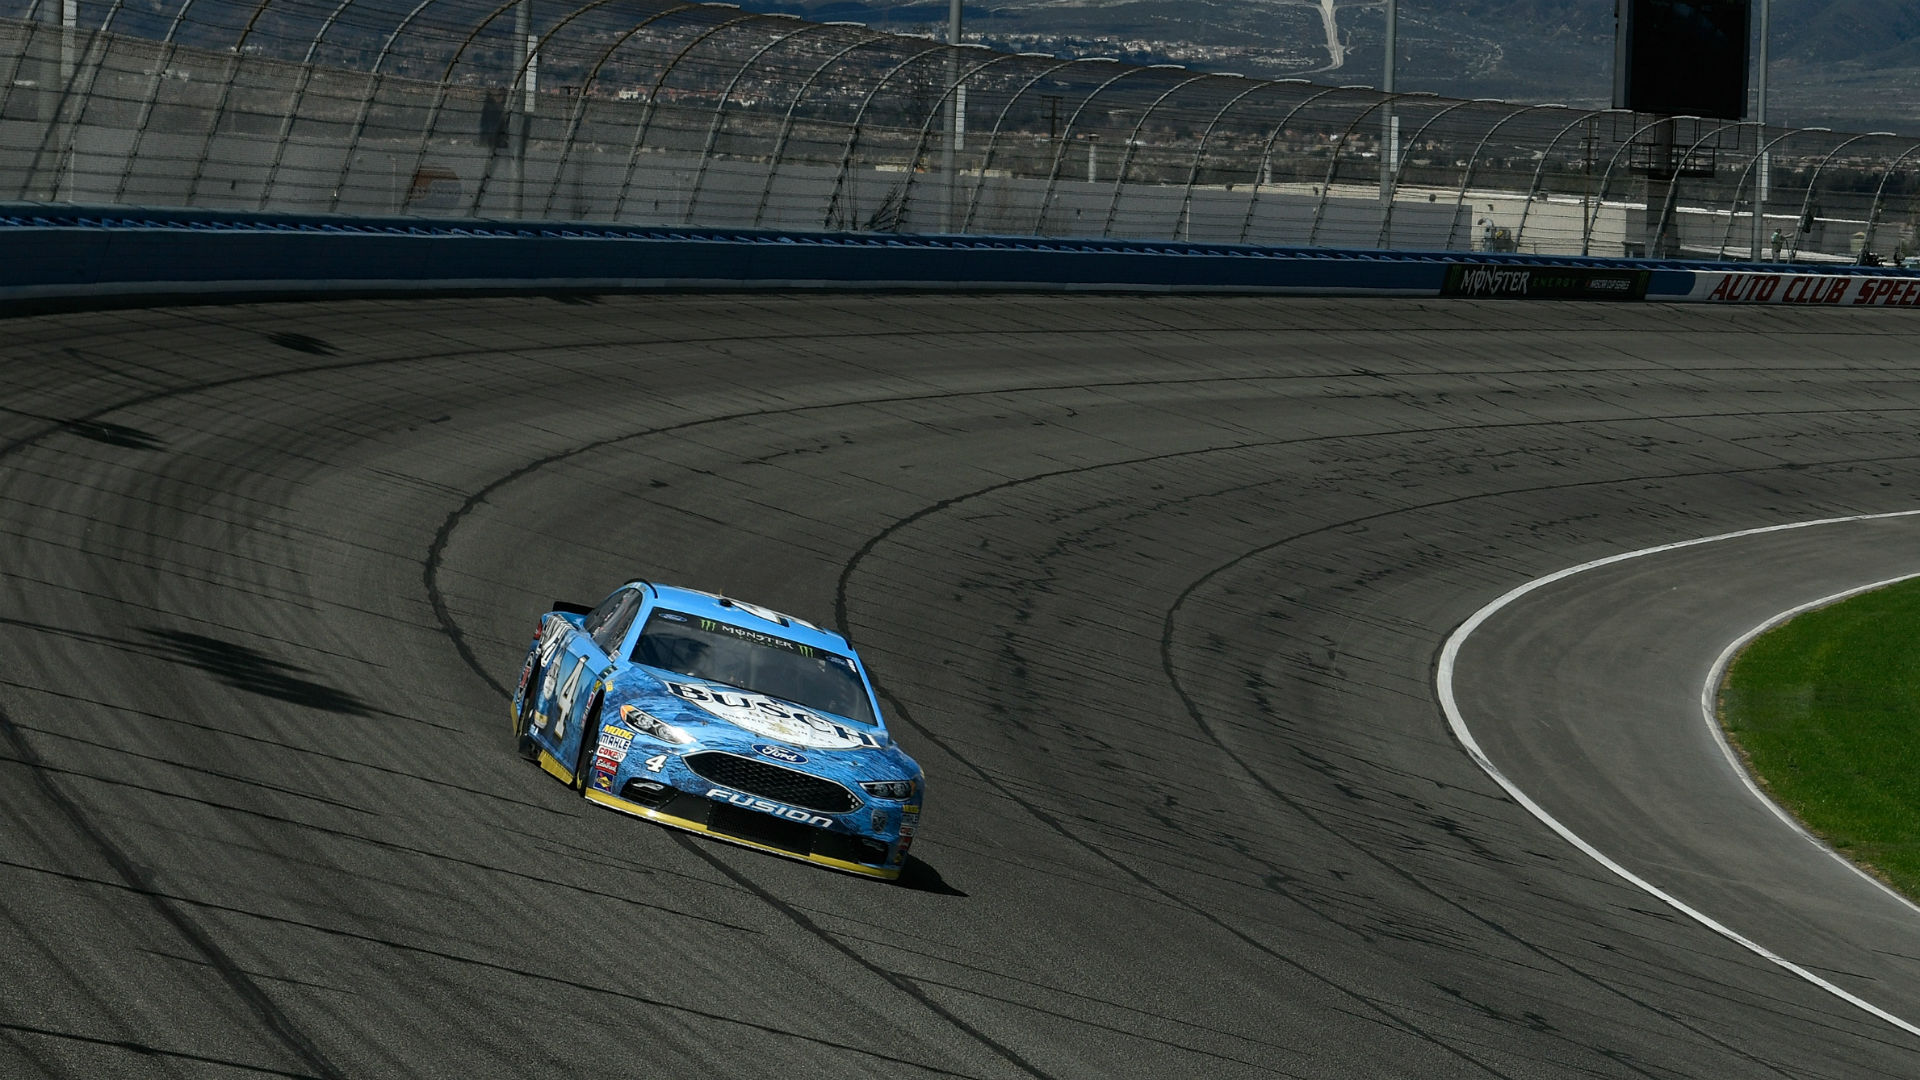 NASCAR at Fontana: Results, highlights from the Auto Club 400